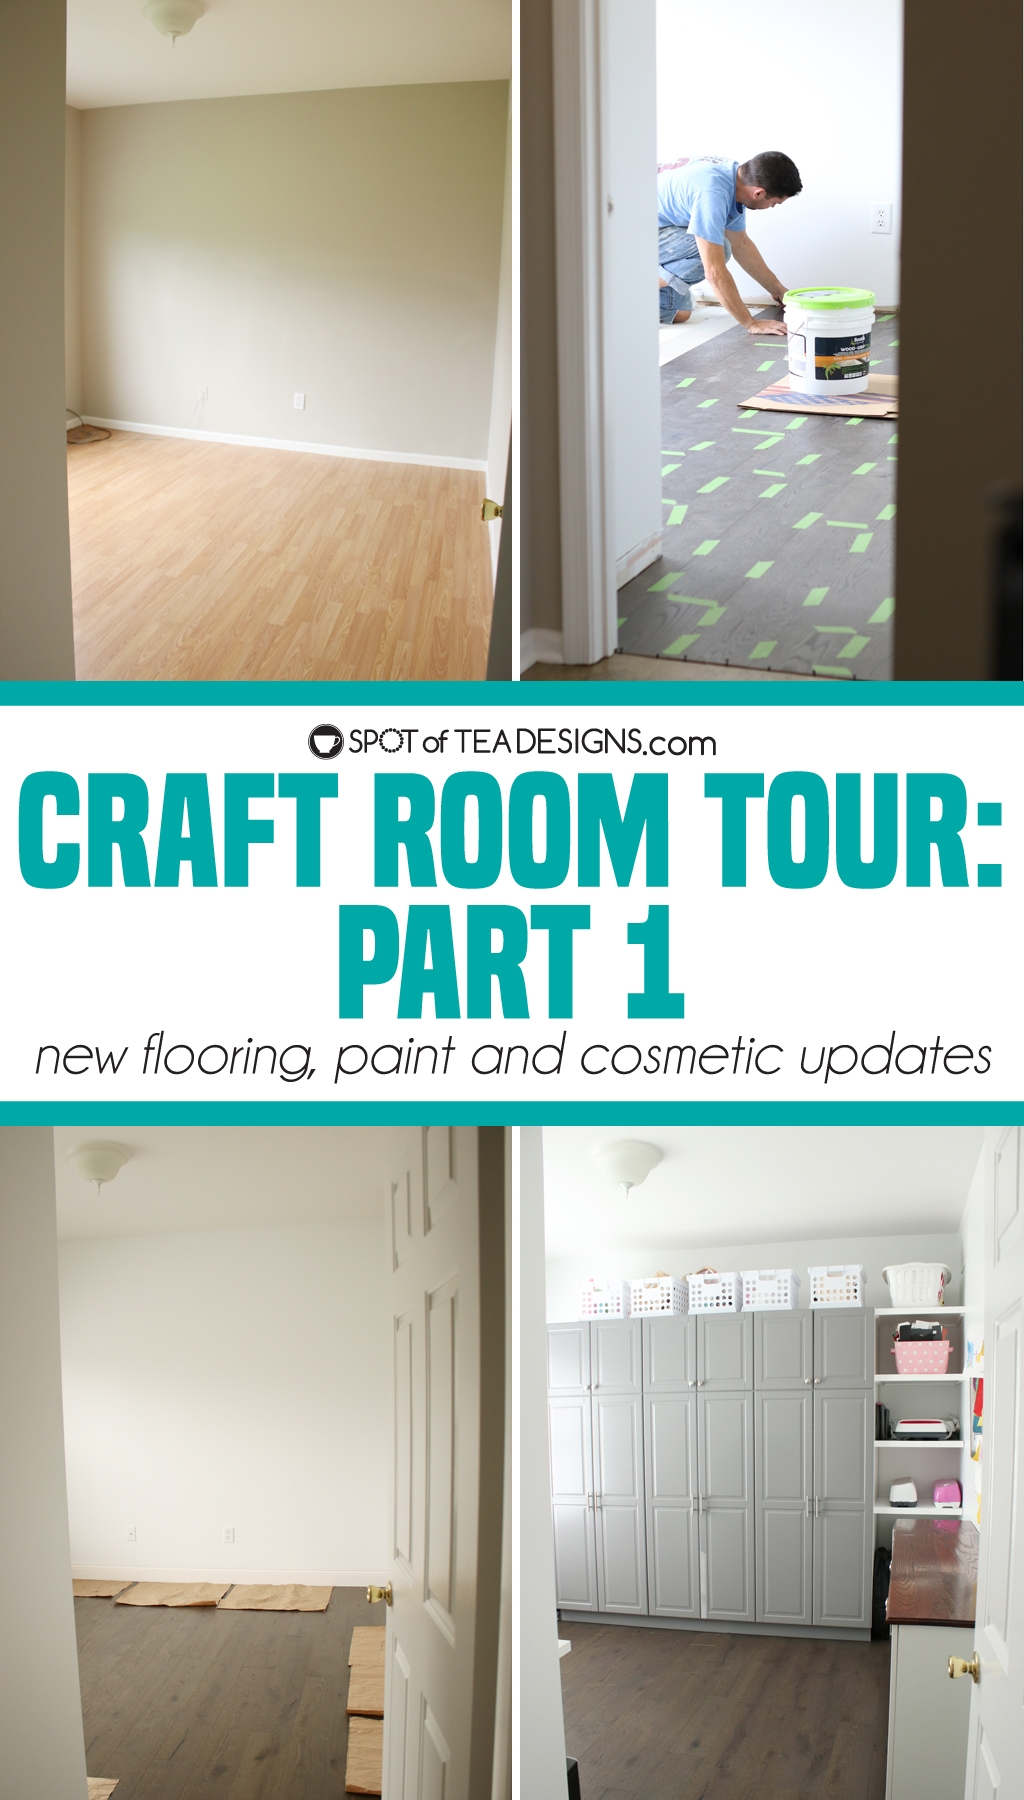 Craft Room Tour - part 1: new flooring, paint and other cosmetic changes | spotofteadesigns.com